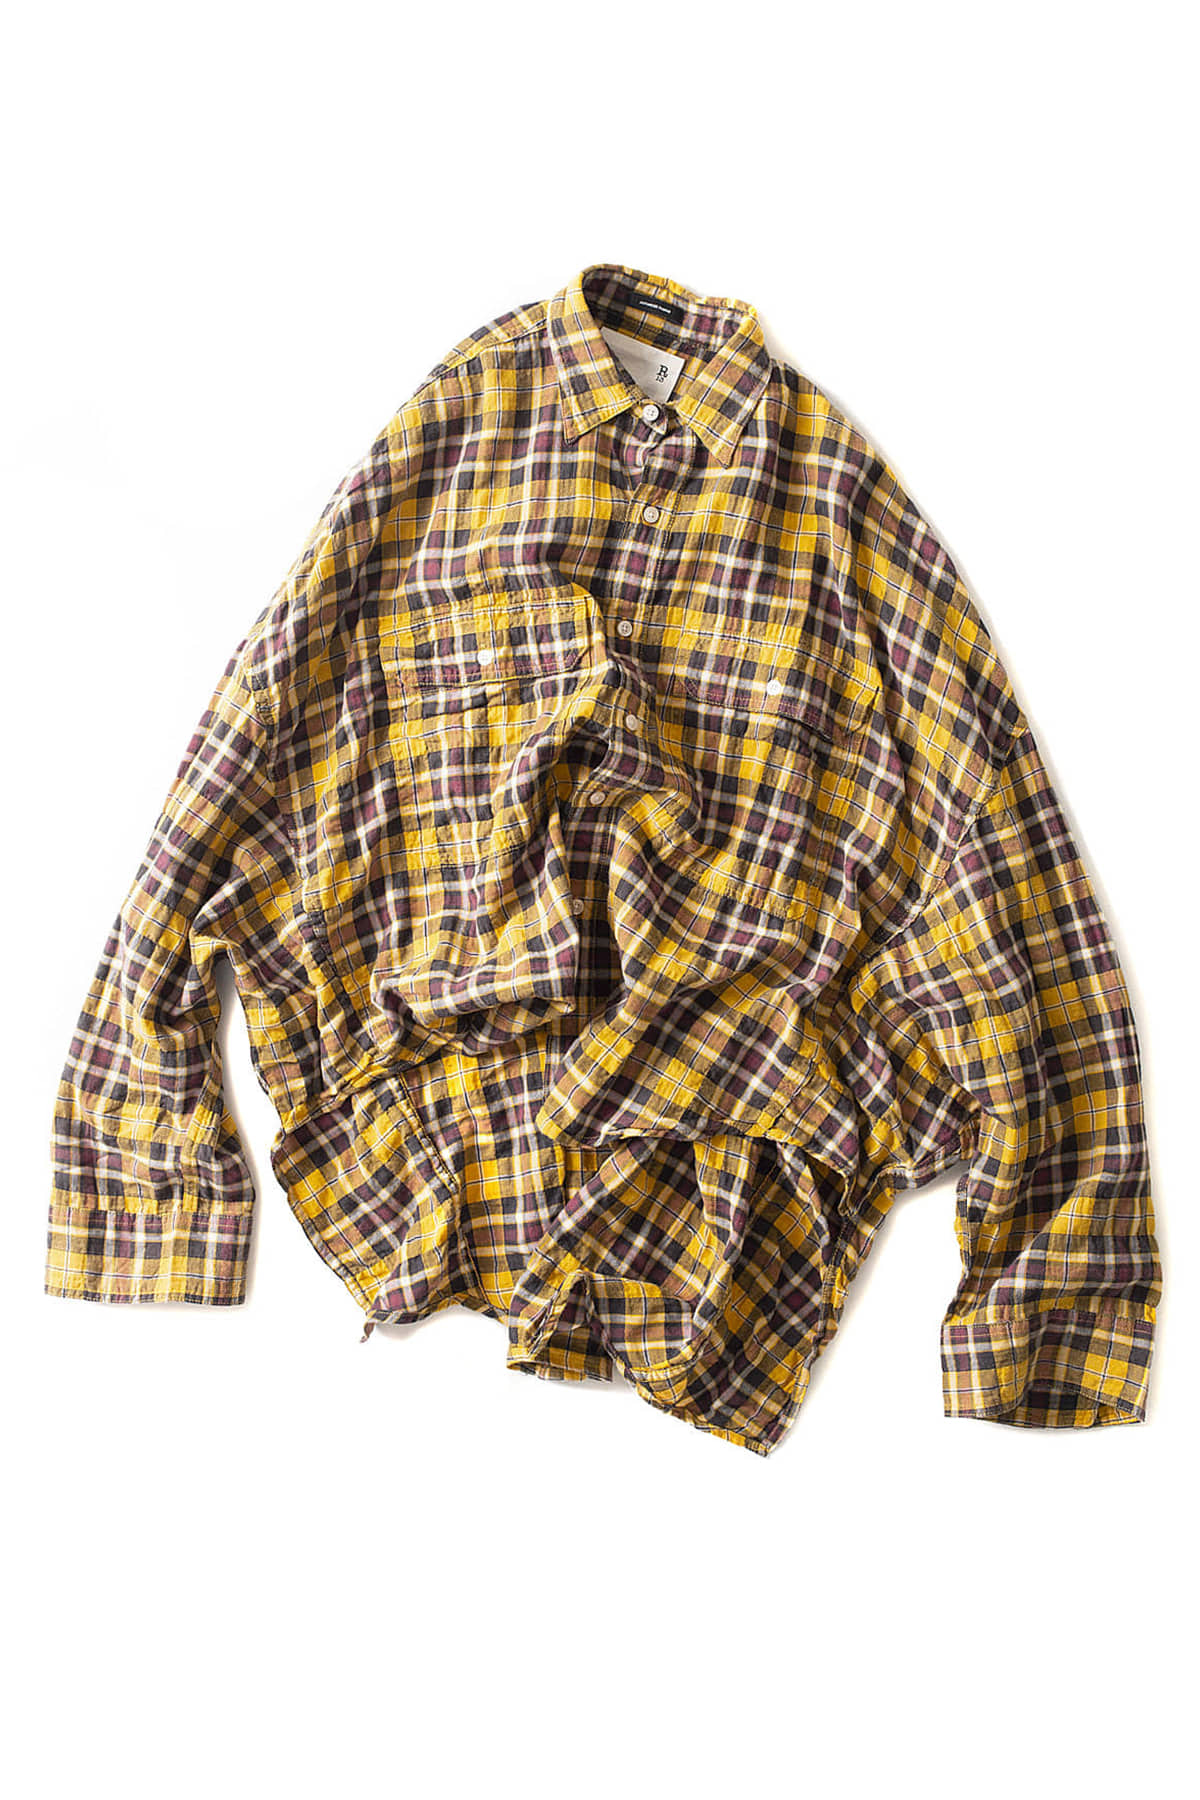 R13 : Oversized Plaid Shirt (Yellow Plaid)